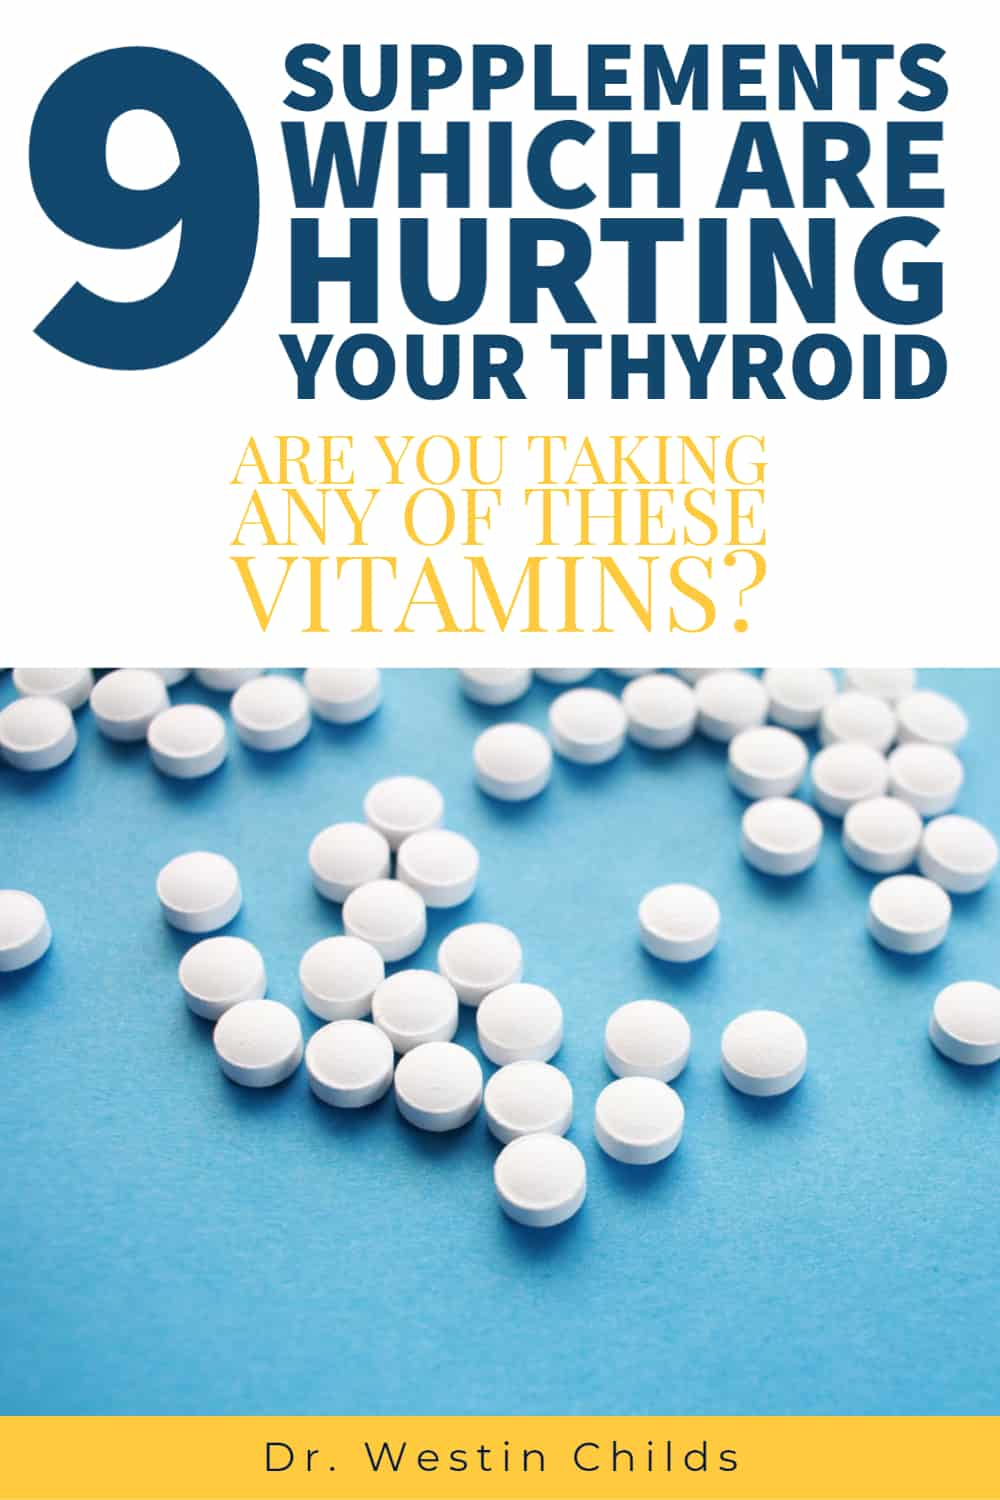 9 supplements which are hurting your thyroid